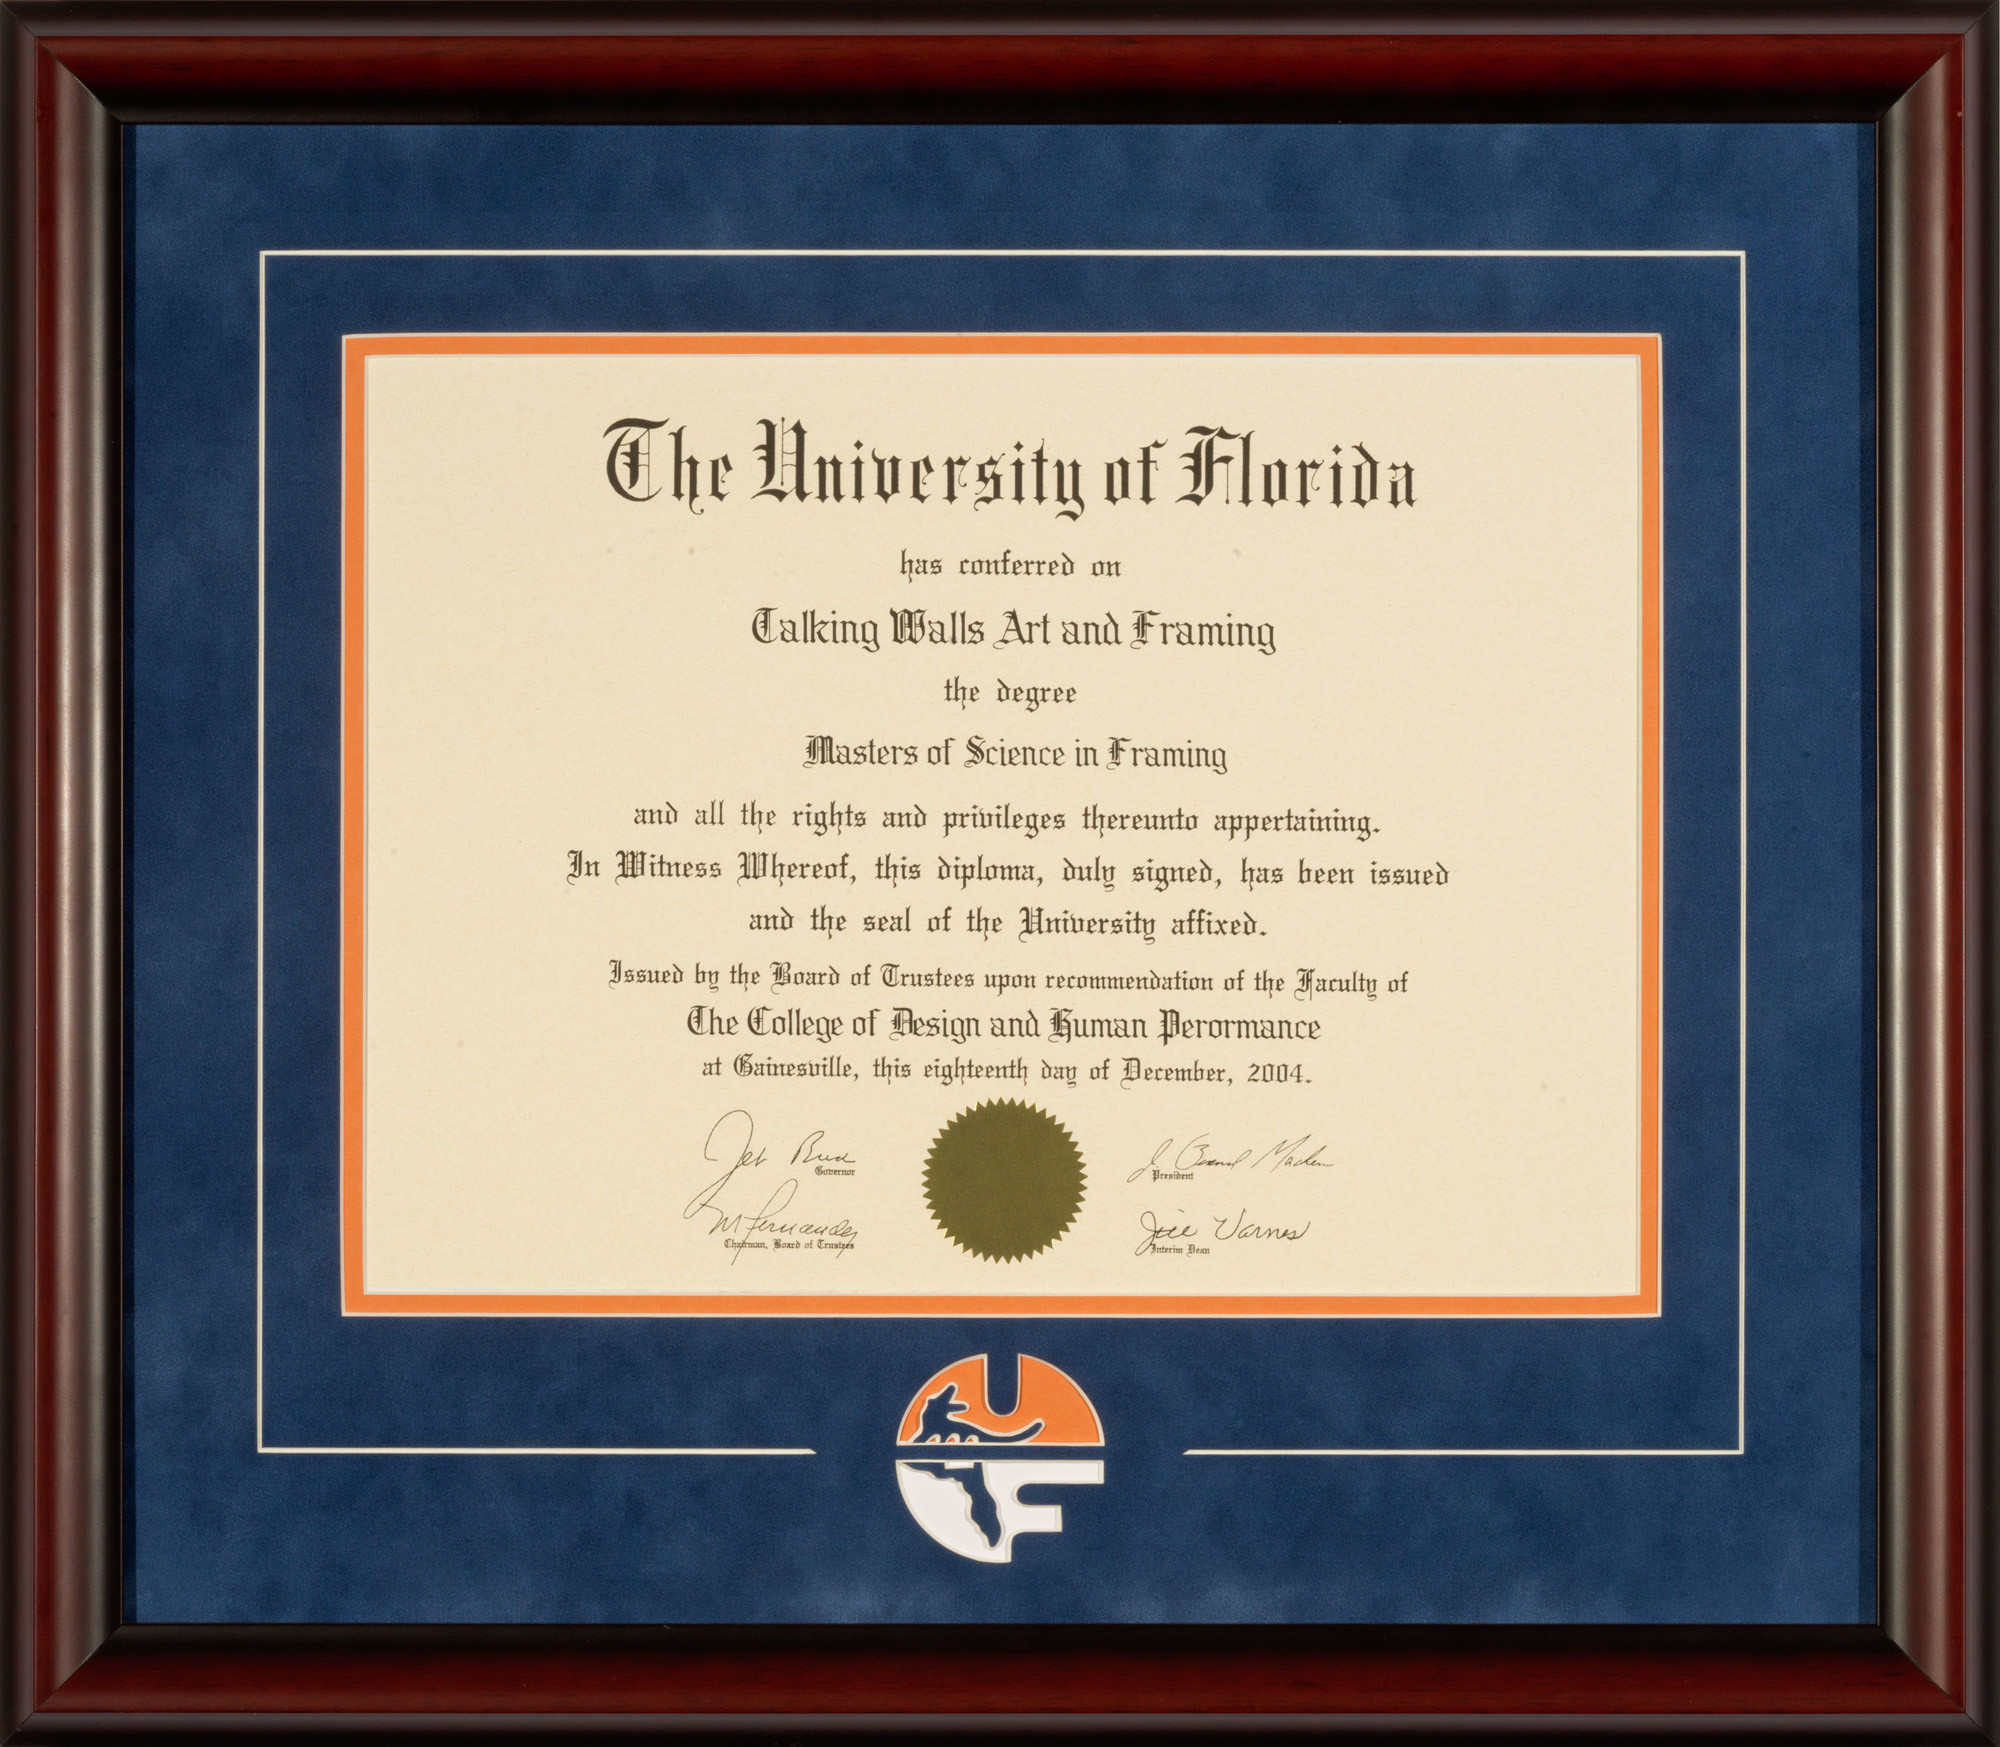 University of Florida Diploma Frames - Talking Walls